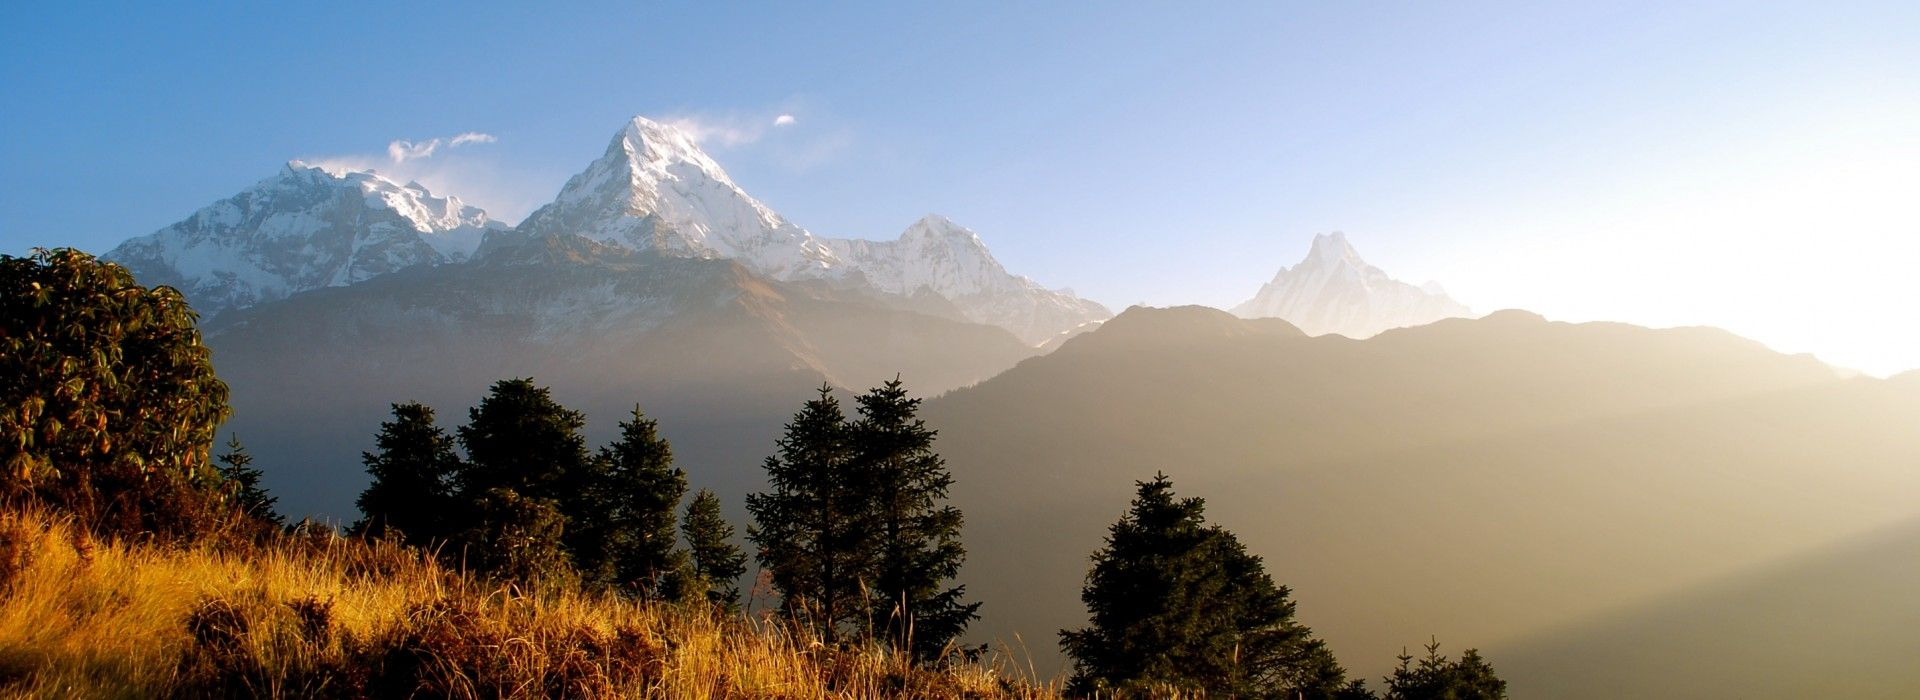 Special interests and hobbies Tours in Nepal